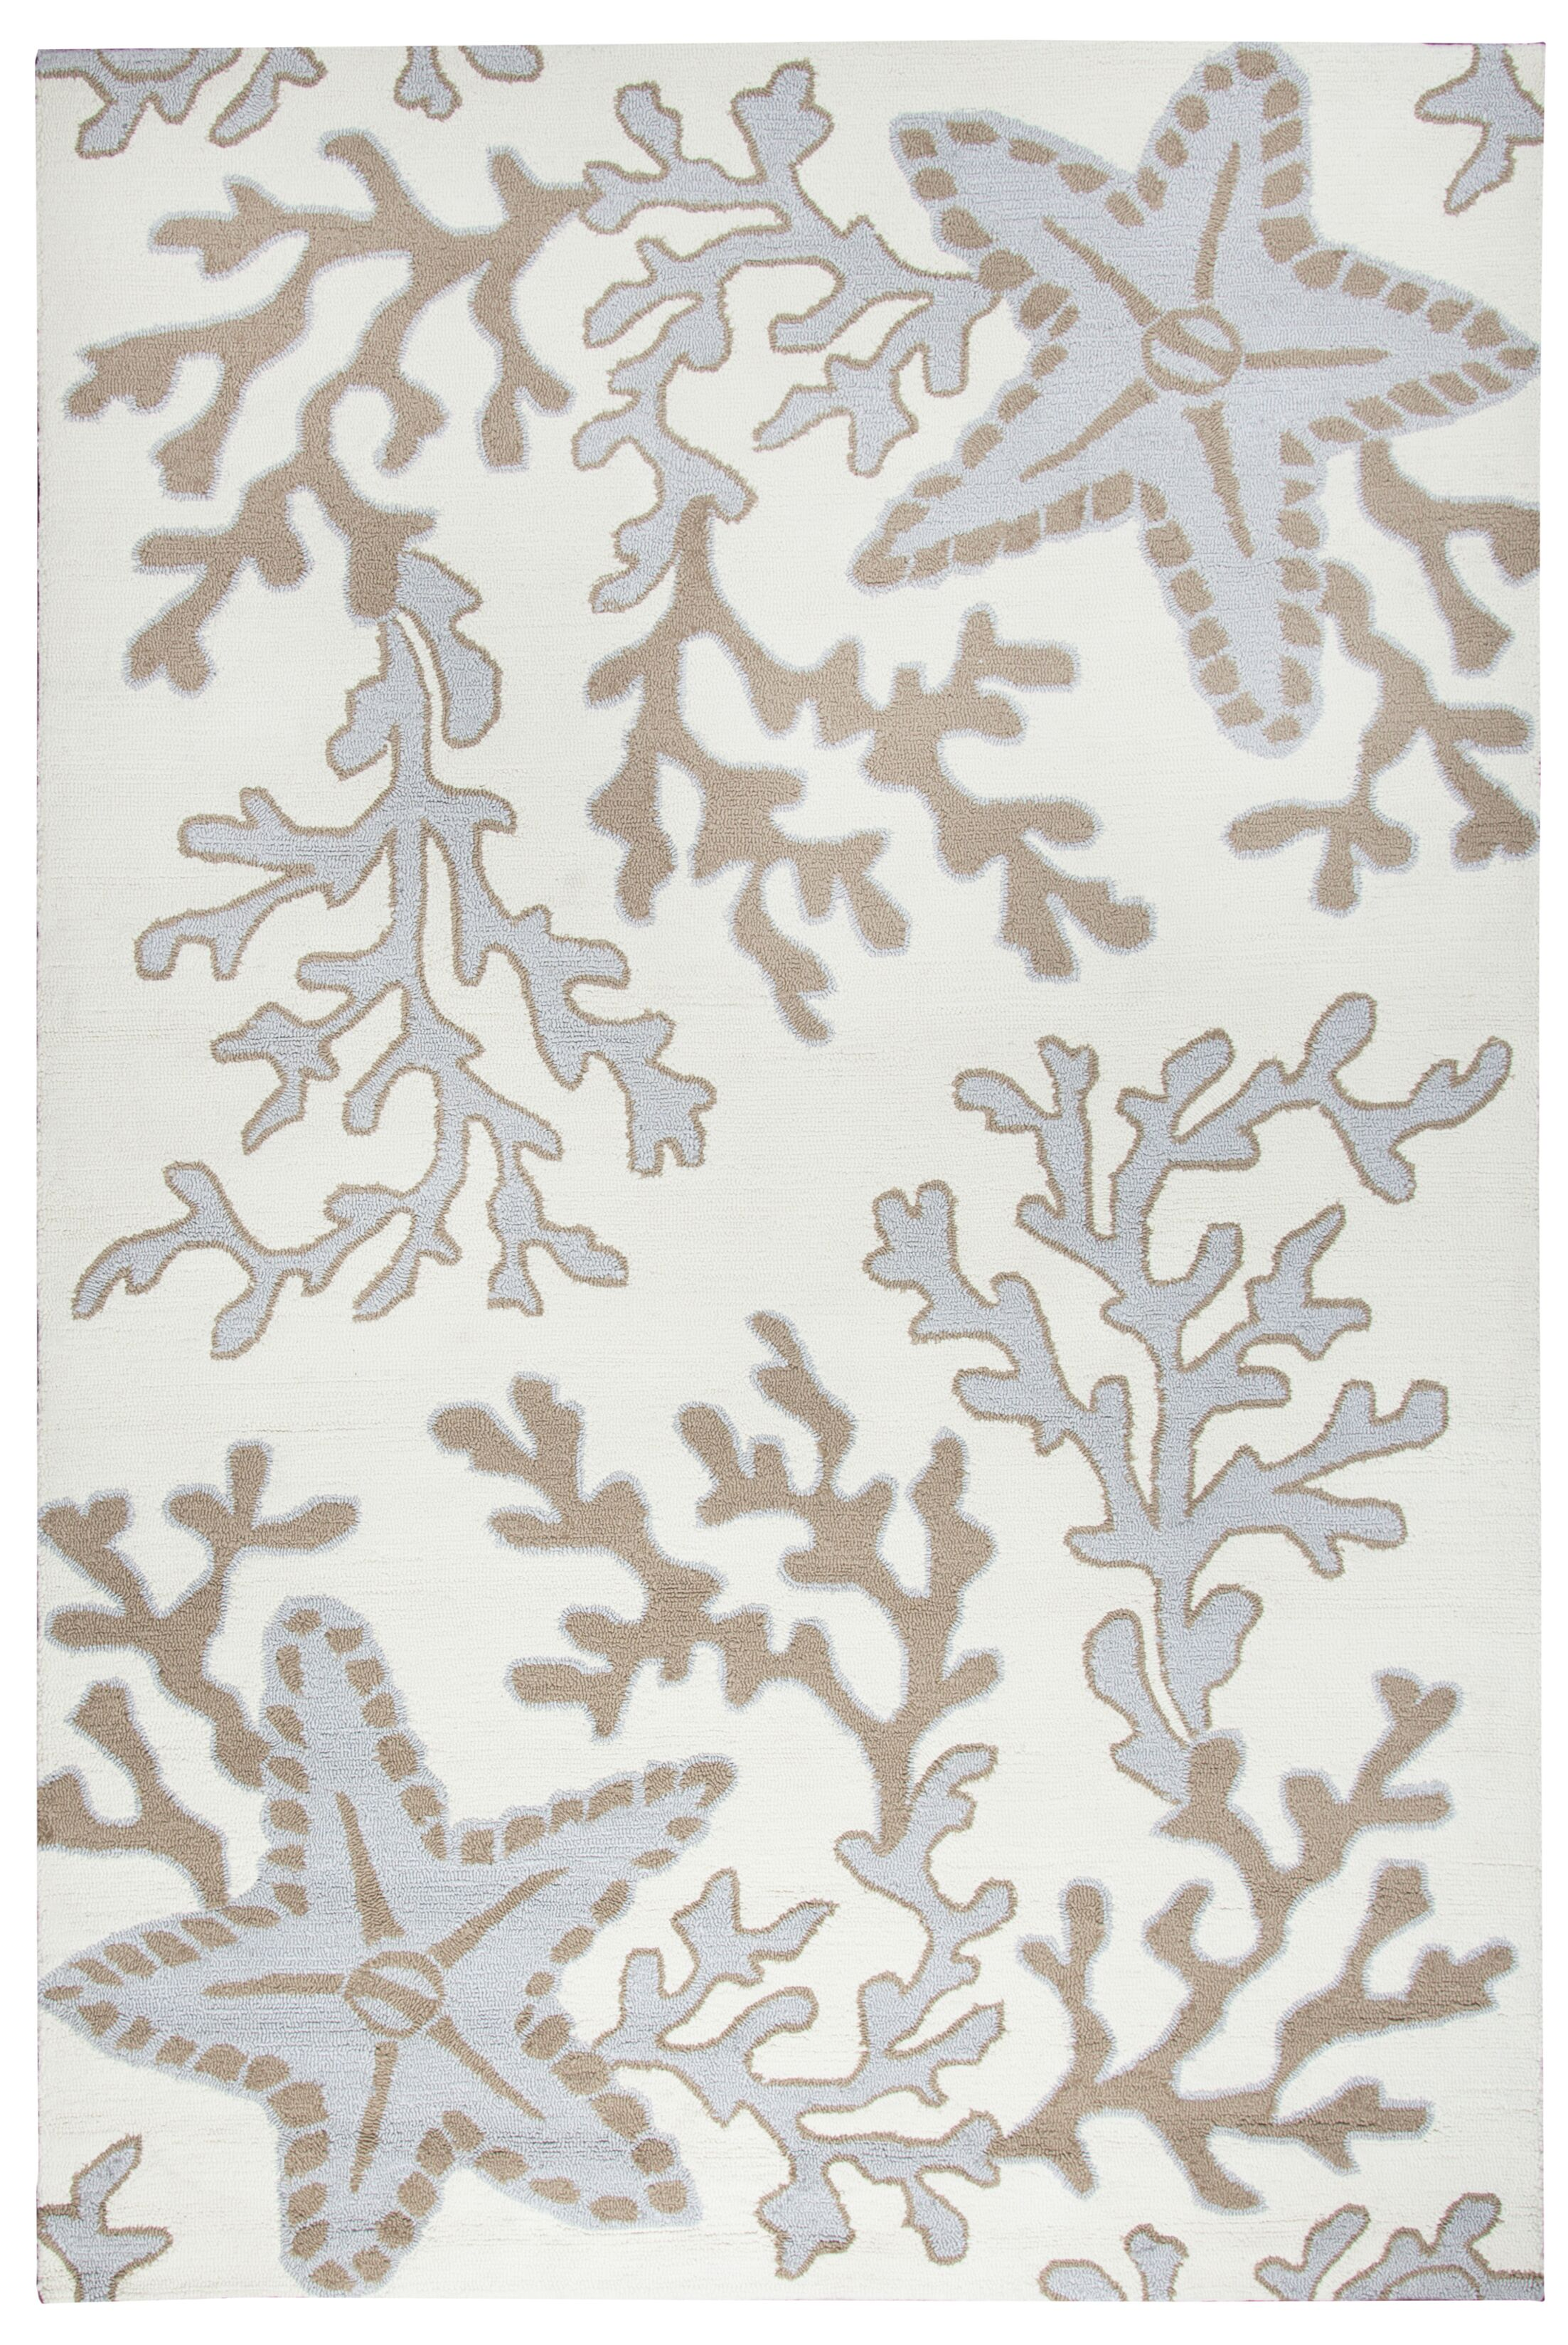 Maryland Hand-Tufted Off White/Tan Indoor/Outdoor Area Rug Size: Rectangle 9' x 12'